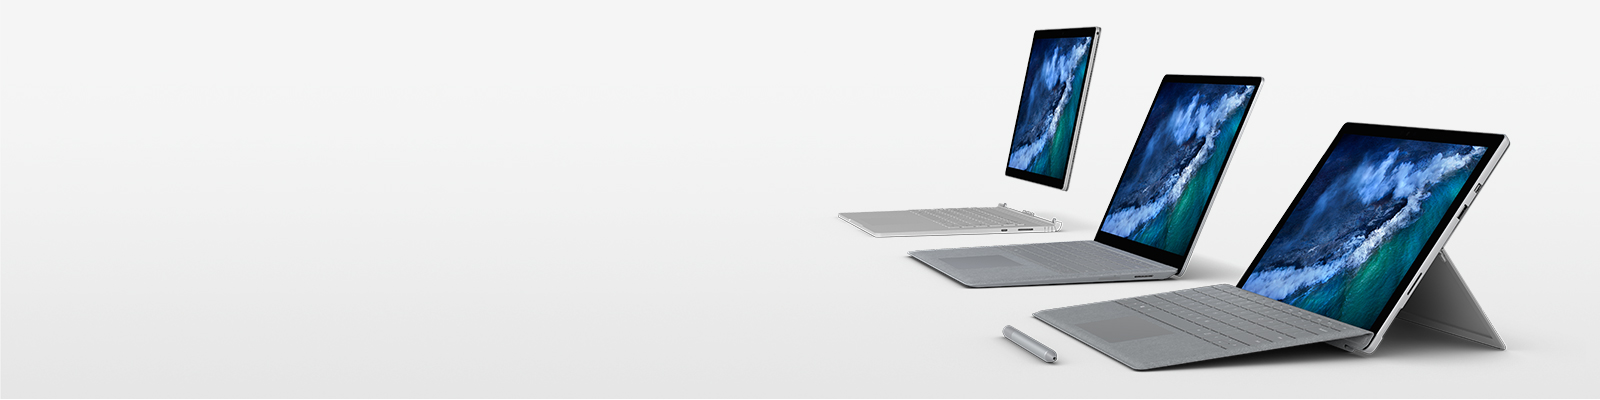 Surface Pro, Surface Laptop, and Surface Book 2 shown with Surface Pen